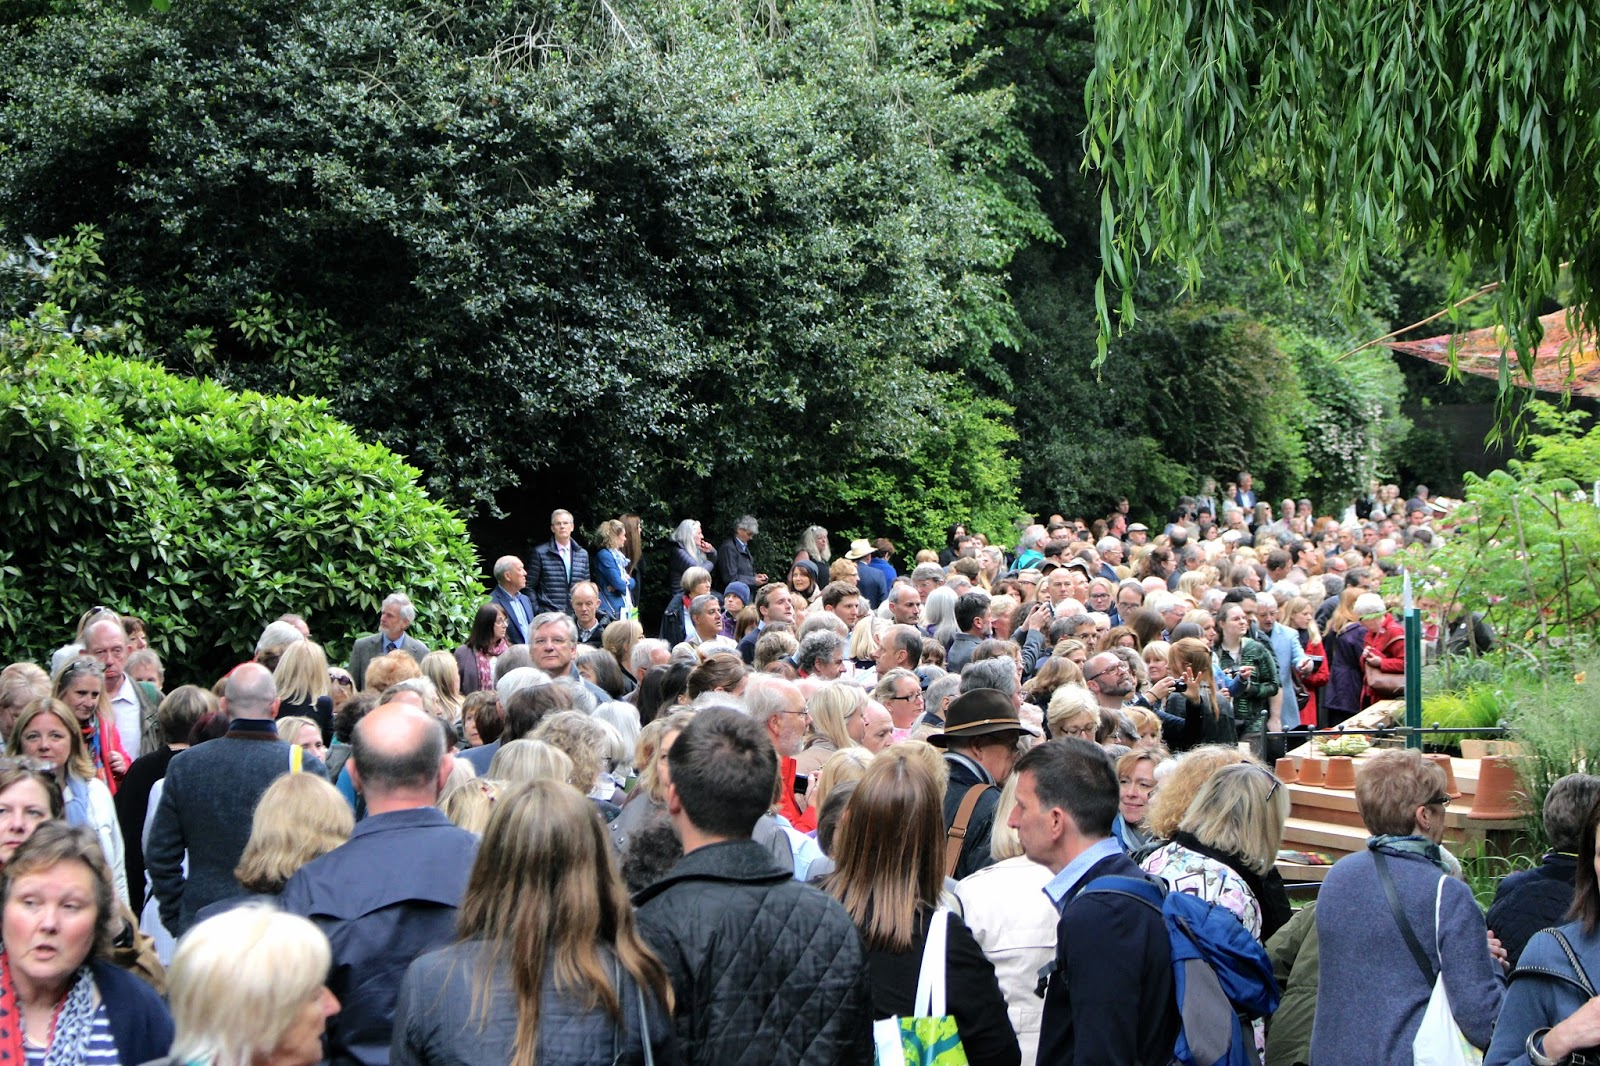 Crowds at Chelsea Flower Show 2016